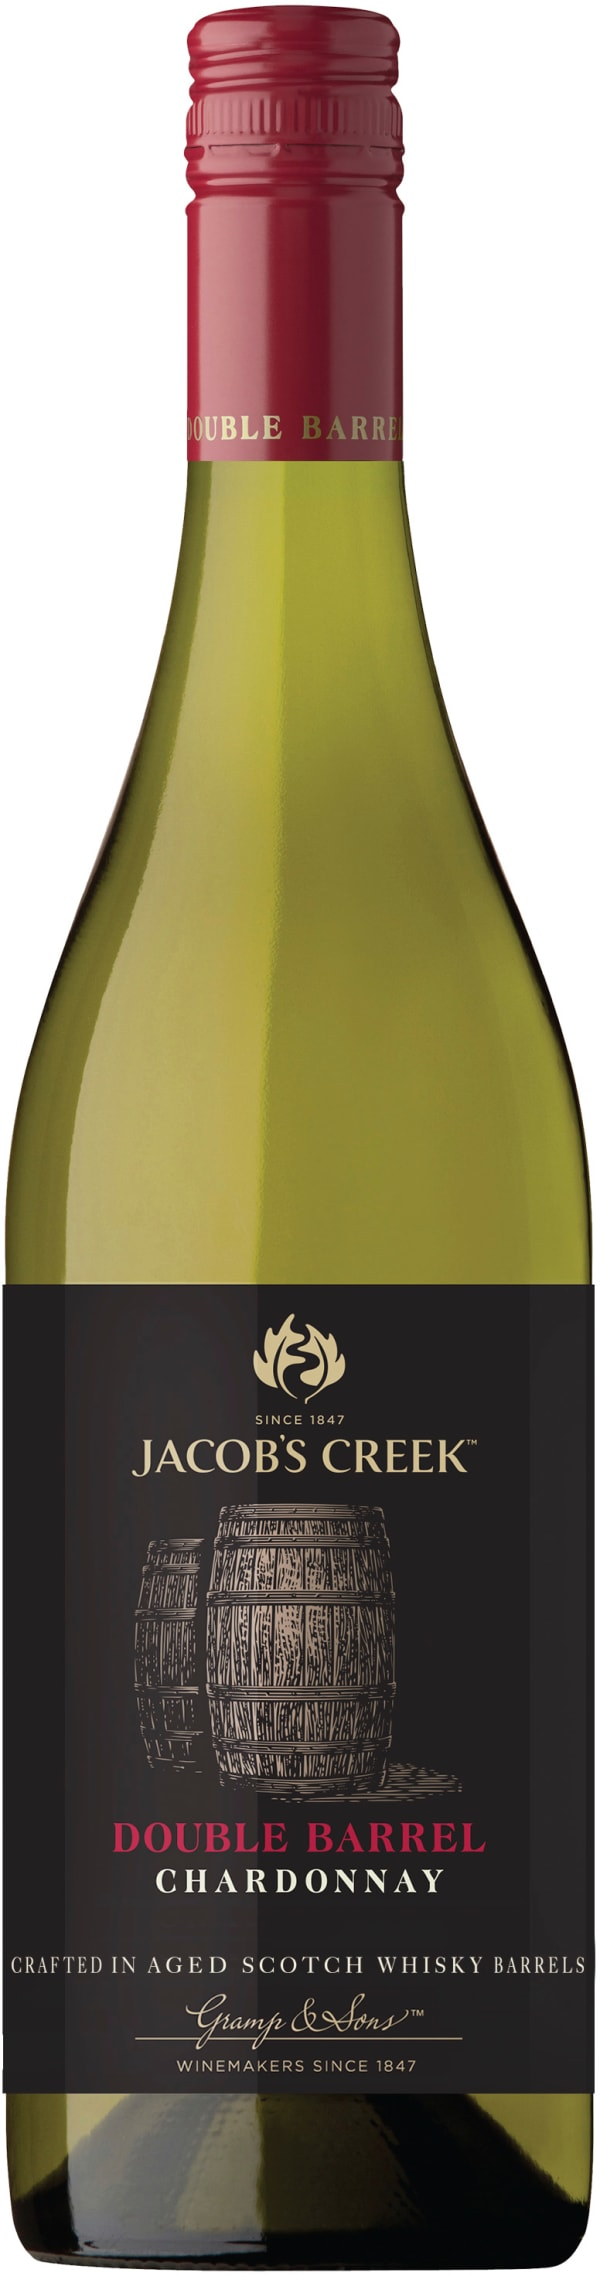 Jacob's Creek Double Barrel Chardonnay 2018